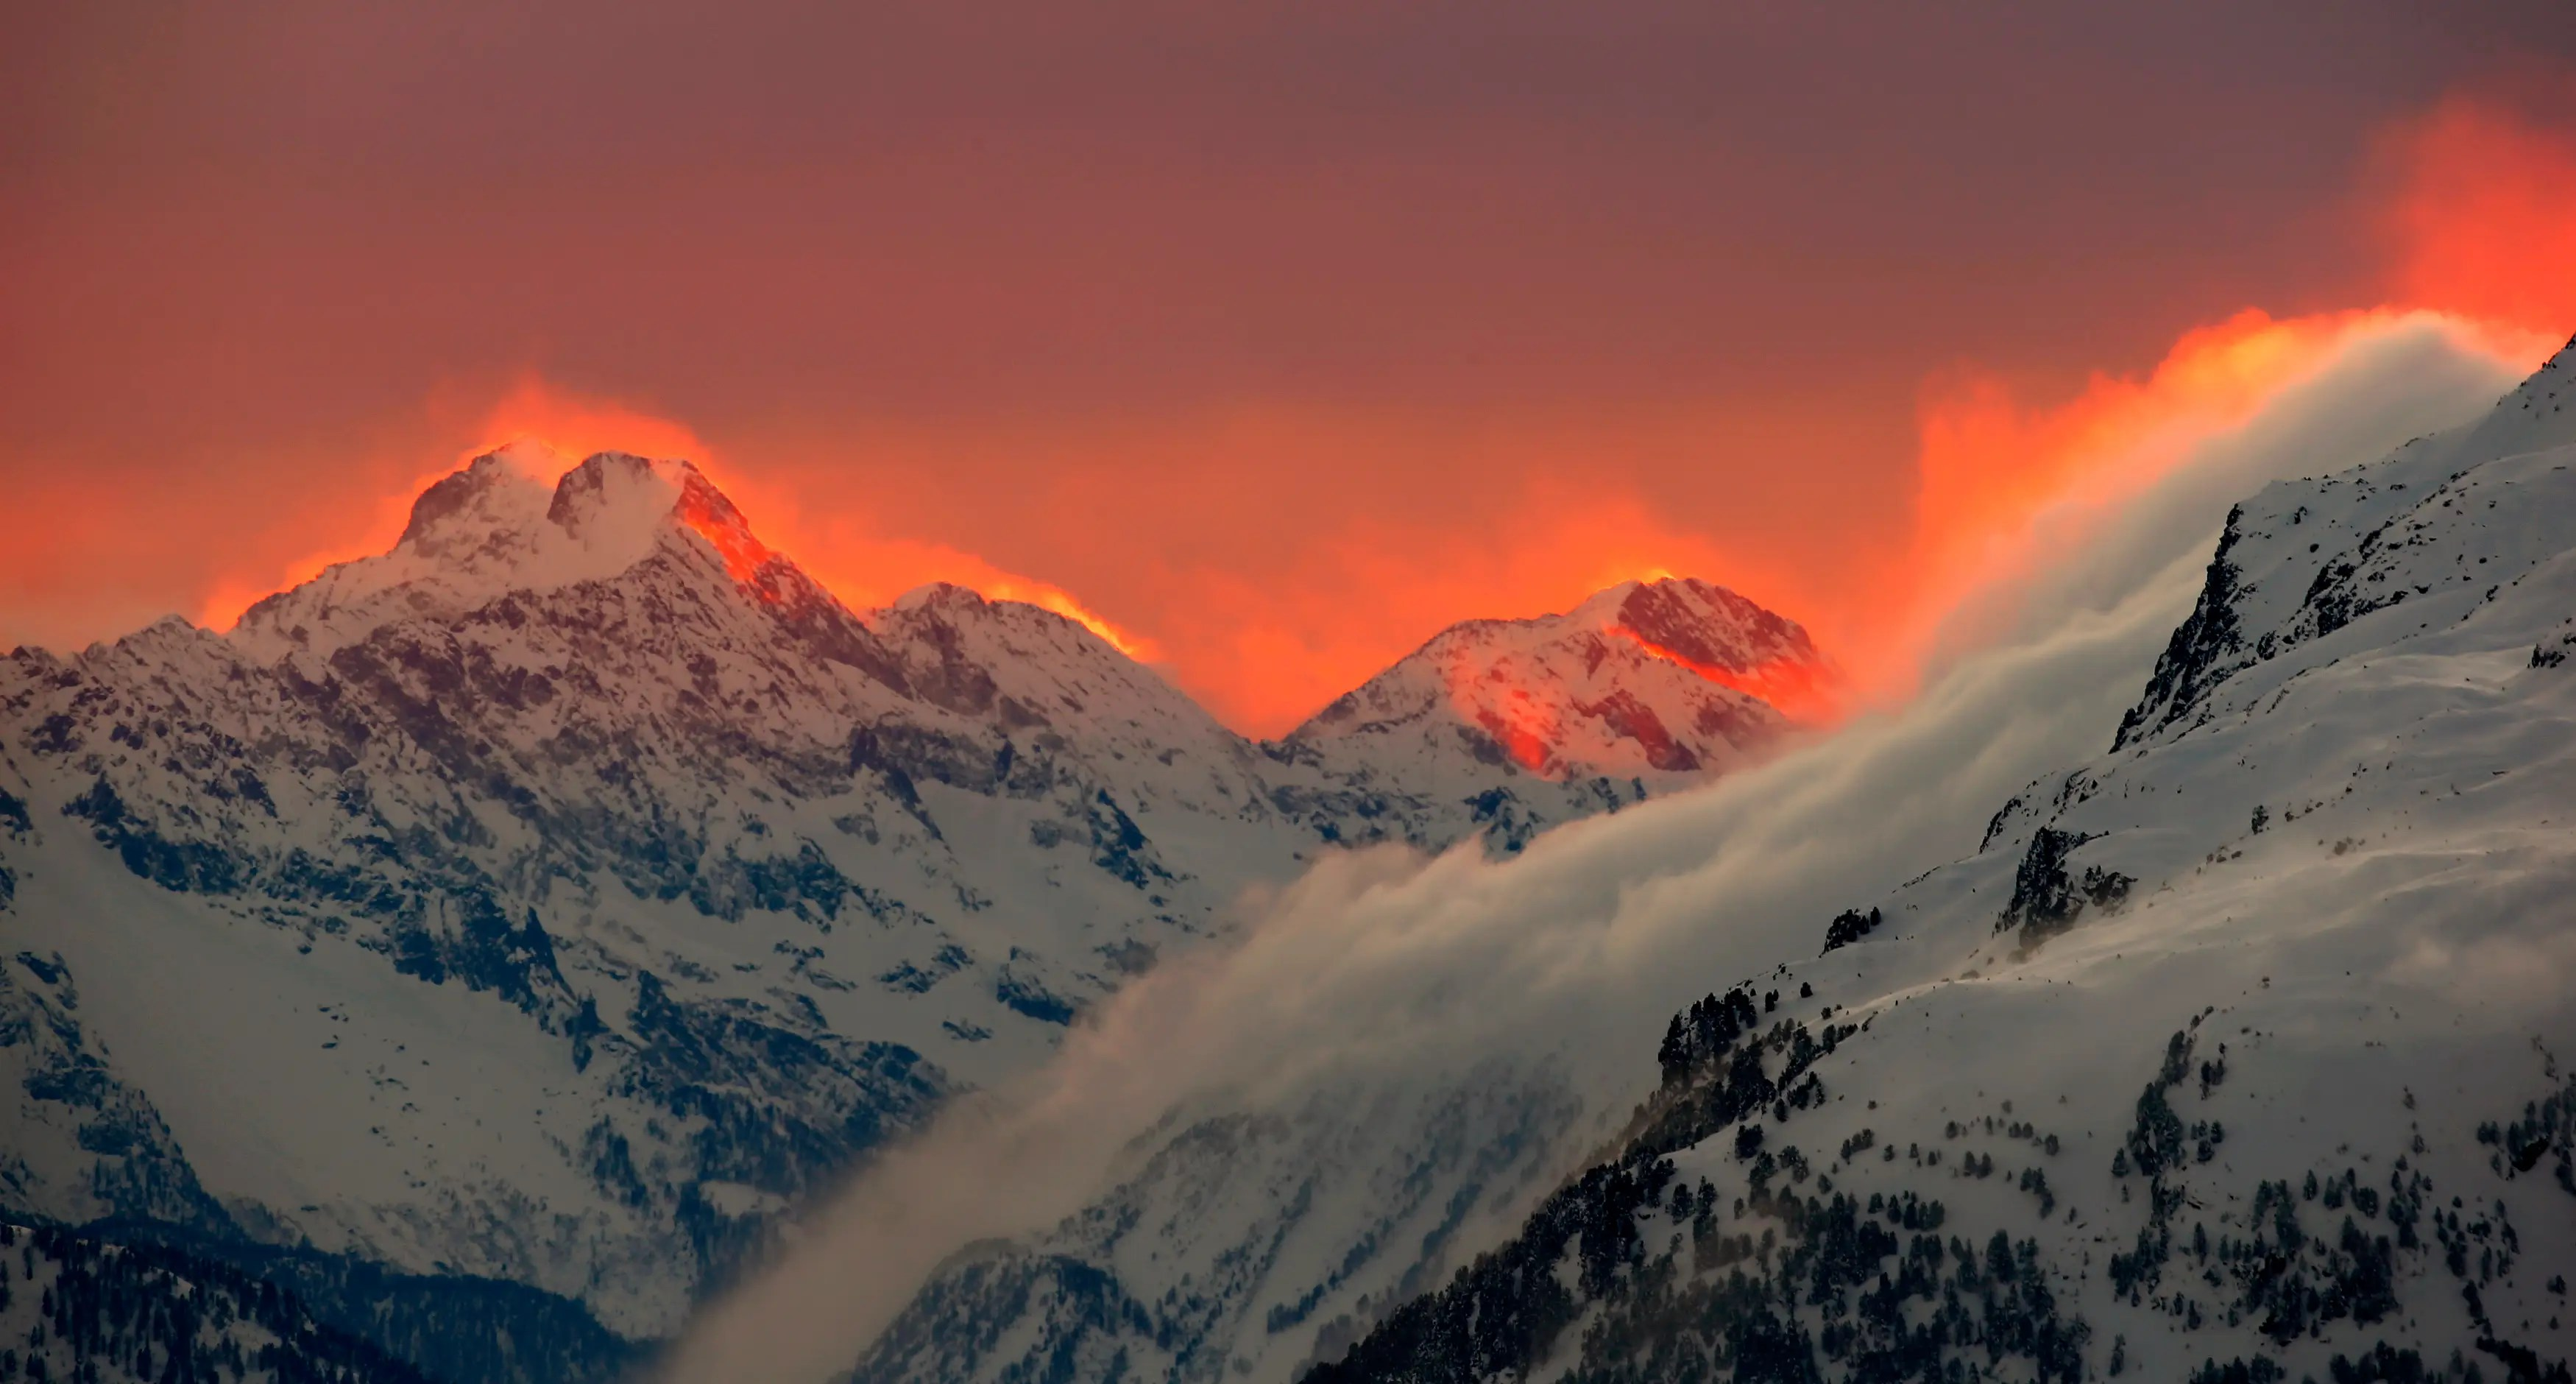 The sunset lights up mountains near a Swiss resort.